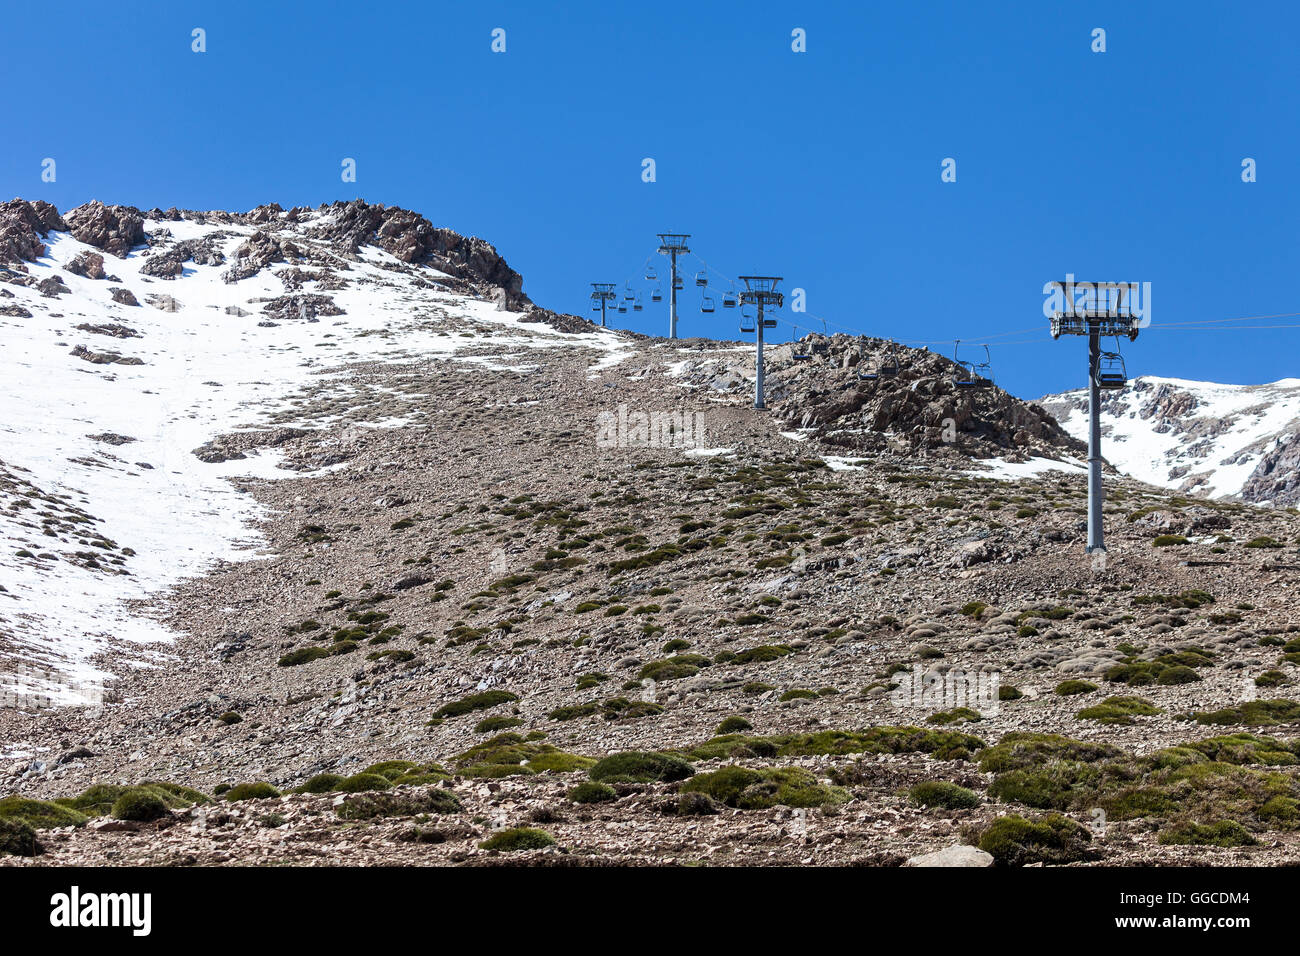 the ski lift at oukaimeden, in the high atlas mountains of morocco